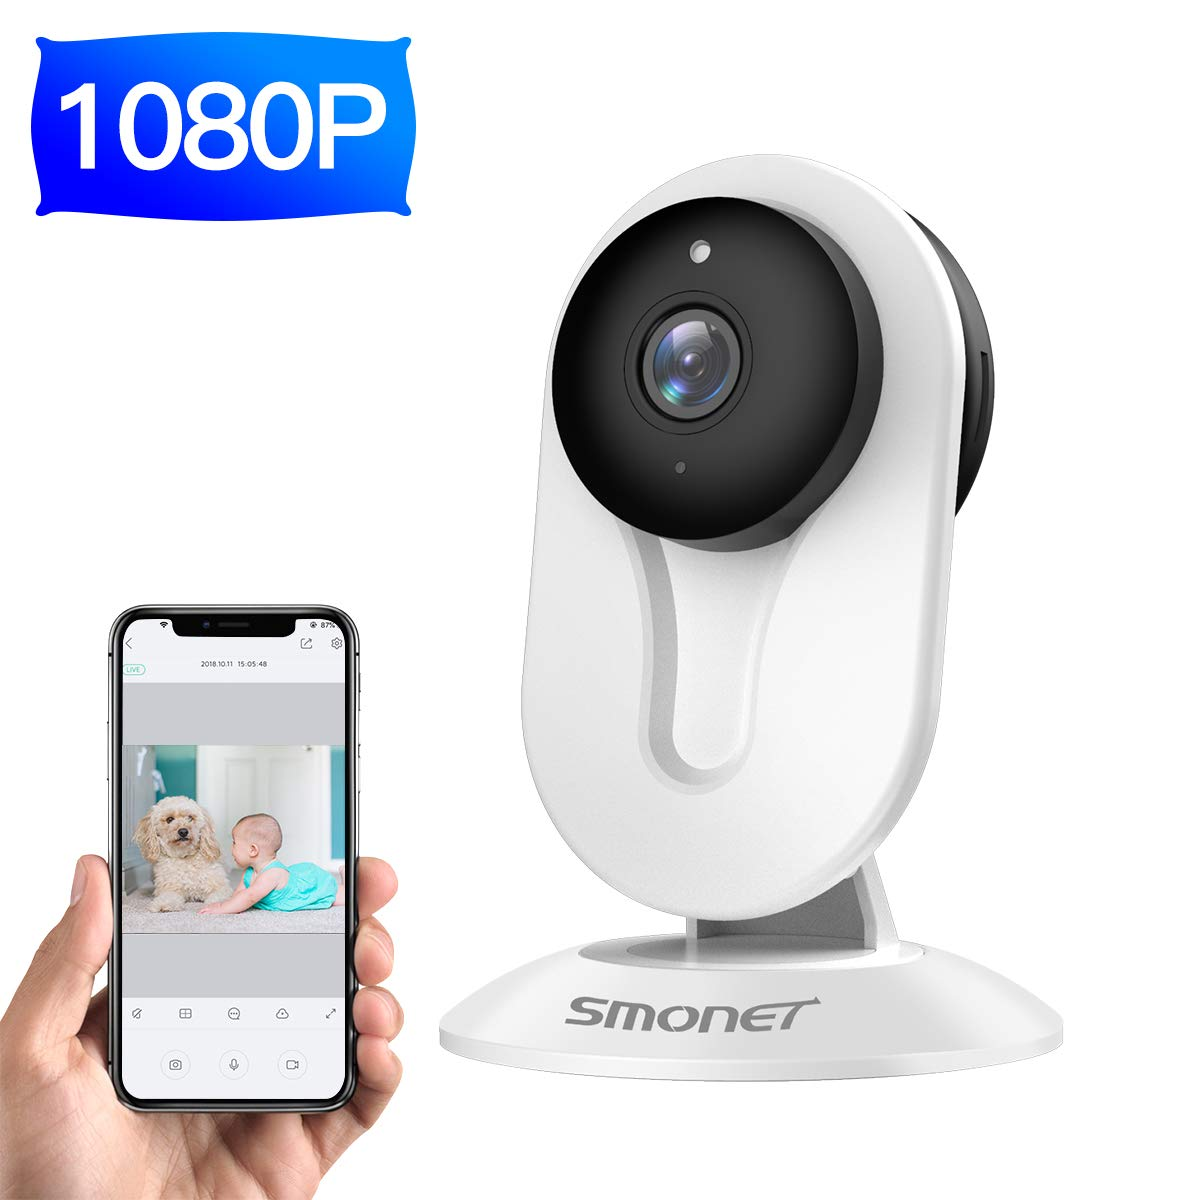 1080P WiFi Home Camera,SMONET Wireless IP Camera with Night Vision,Two Way Audio,Motion Detection,Indoor Security Camera with Free APP Remote View for Older Baby Nanny Pet,Support Cloud Service